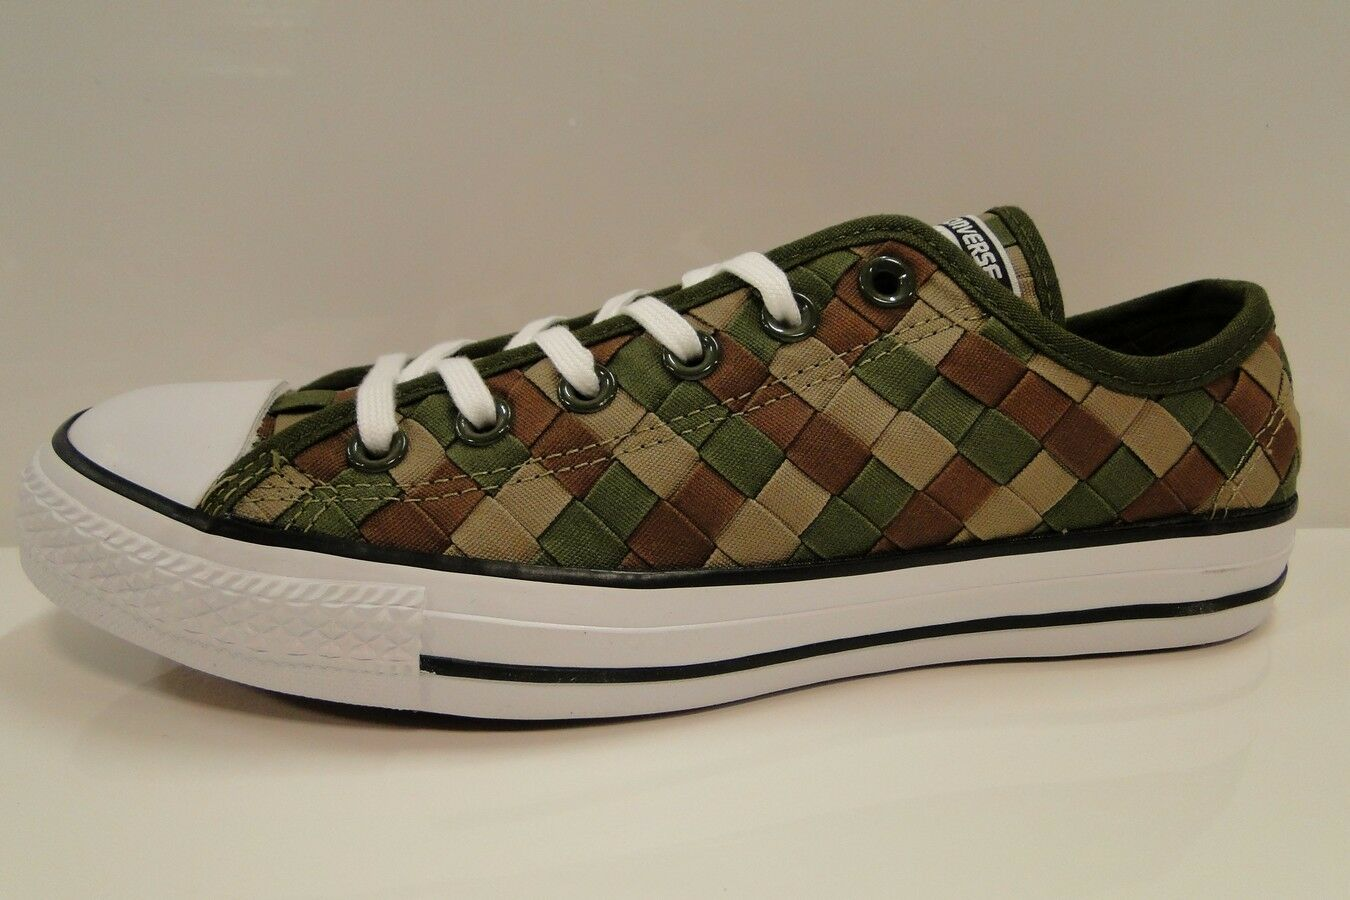 CONVERSE woven CT All Star OX woven CONVERSE 151242C HERBAL/KHAKI Unisex Trainers mens 7 wmns 9 4ce009